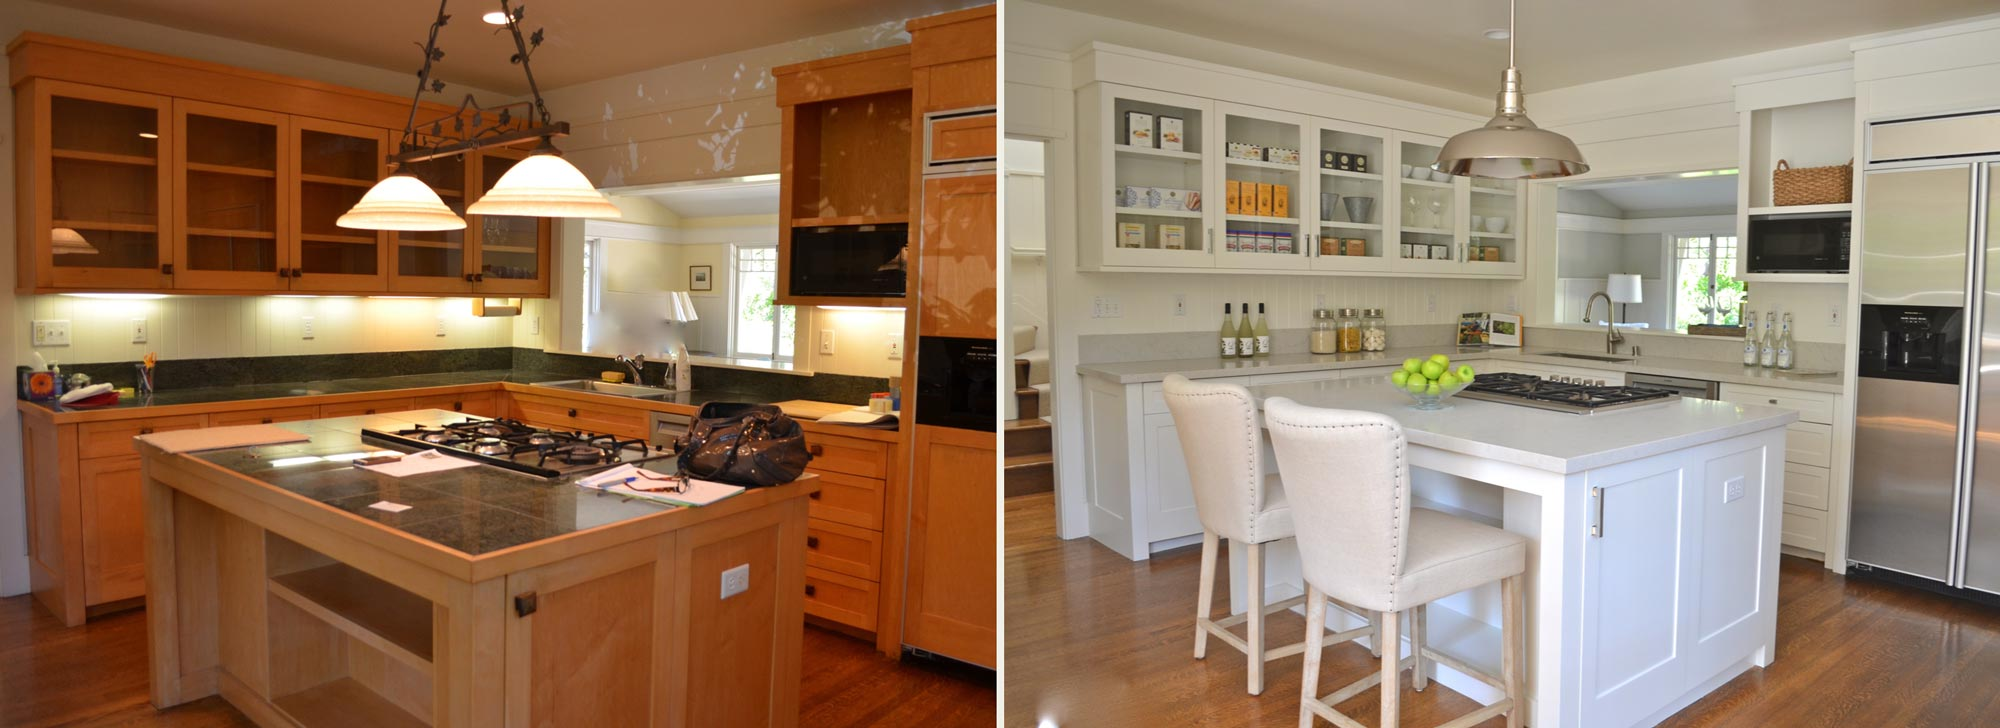 cary-nowell-staging-before-after-8.jpg